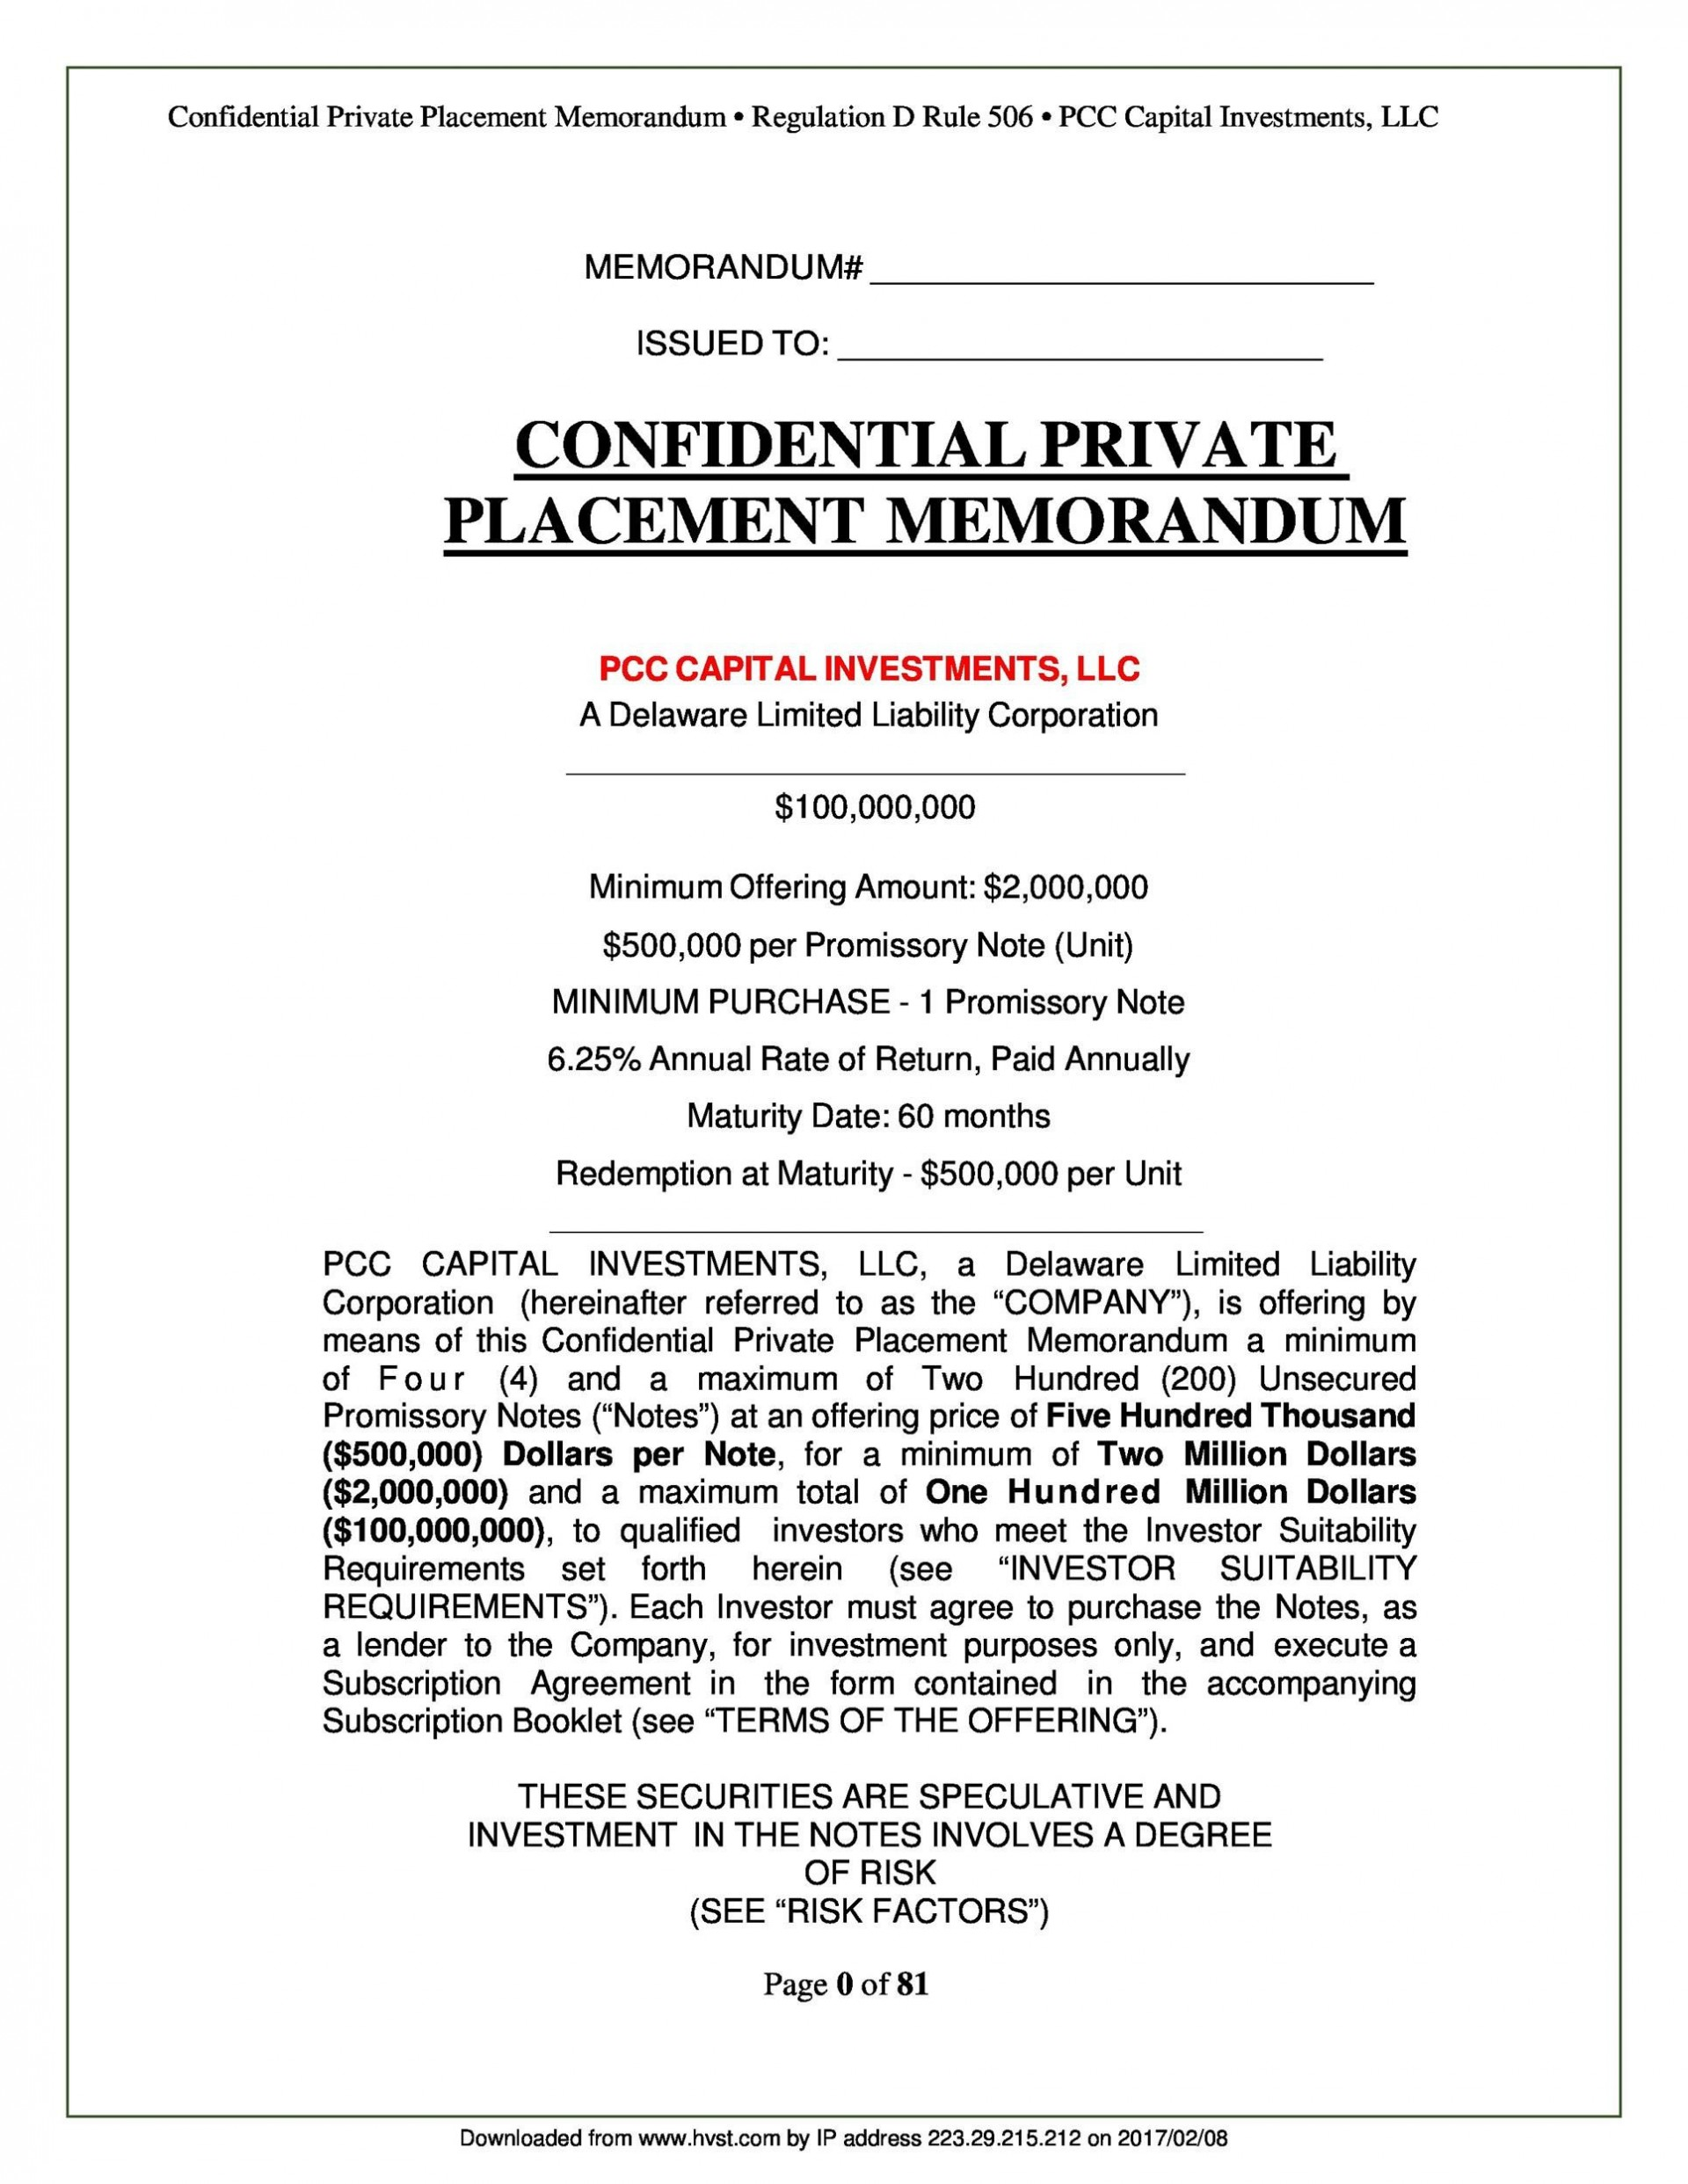 005 Amazing Private Placement Memorandum Template Concept  Real Estate Singapore1920